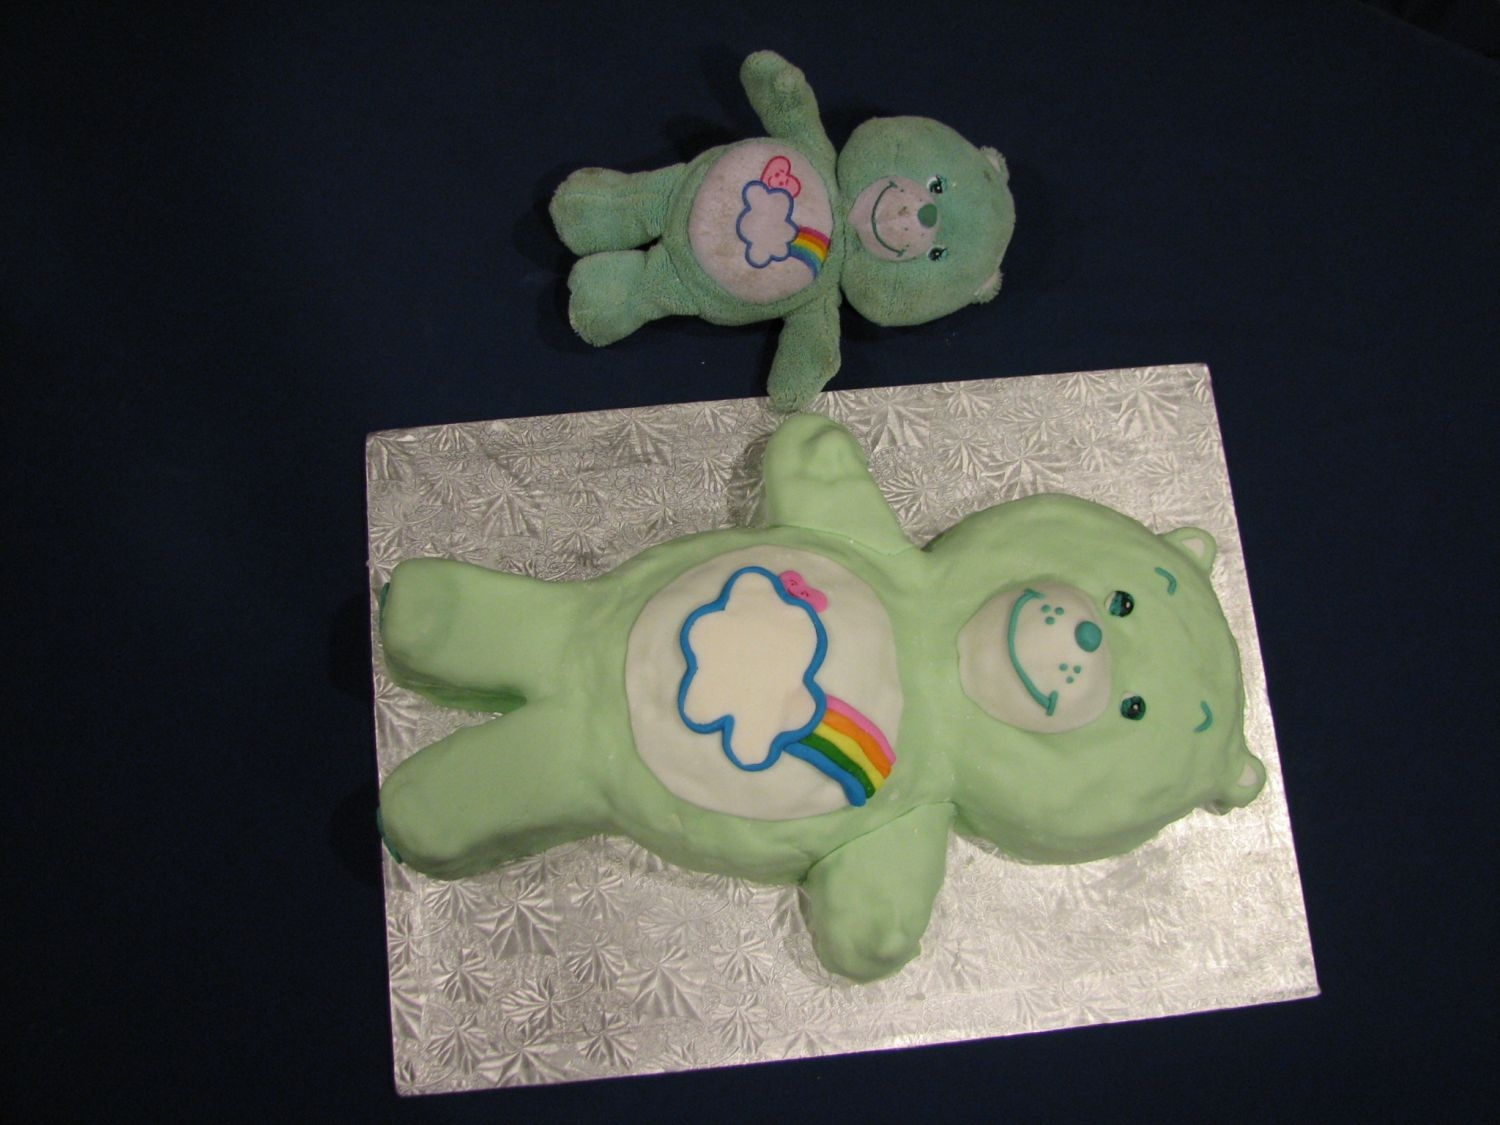 Katie's Care Bear My first attempt at cake carving. I was really pleased with the result. So was my daughter. She loved it. The cake matches her favourite...